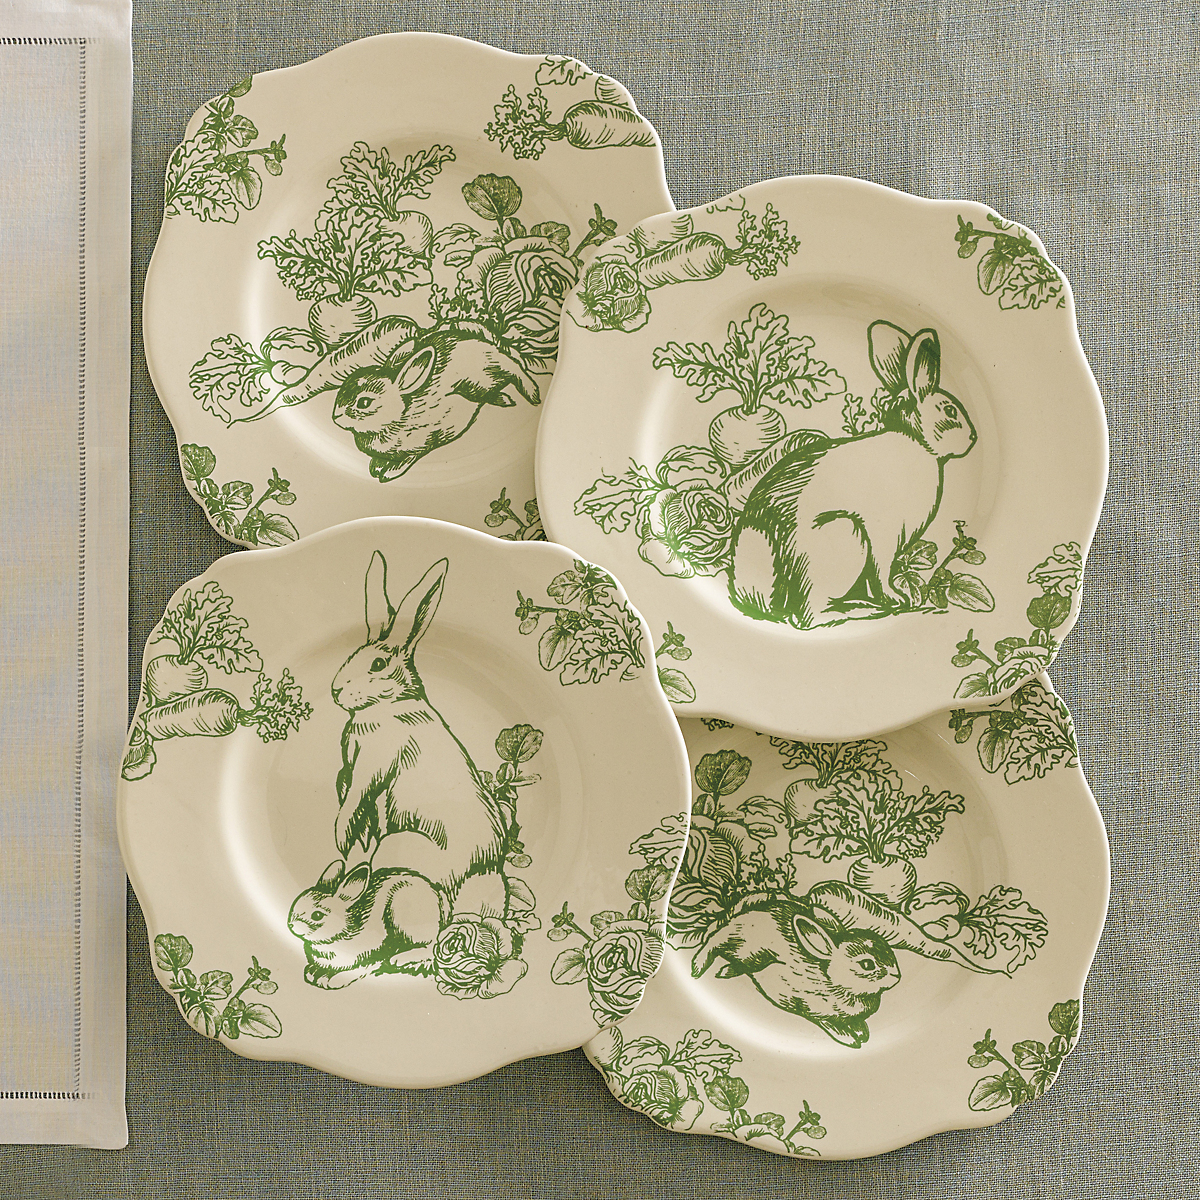 Garden Rabbit Plates, Set of 4